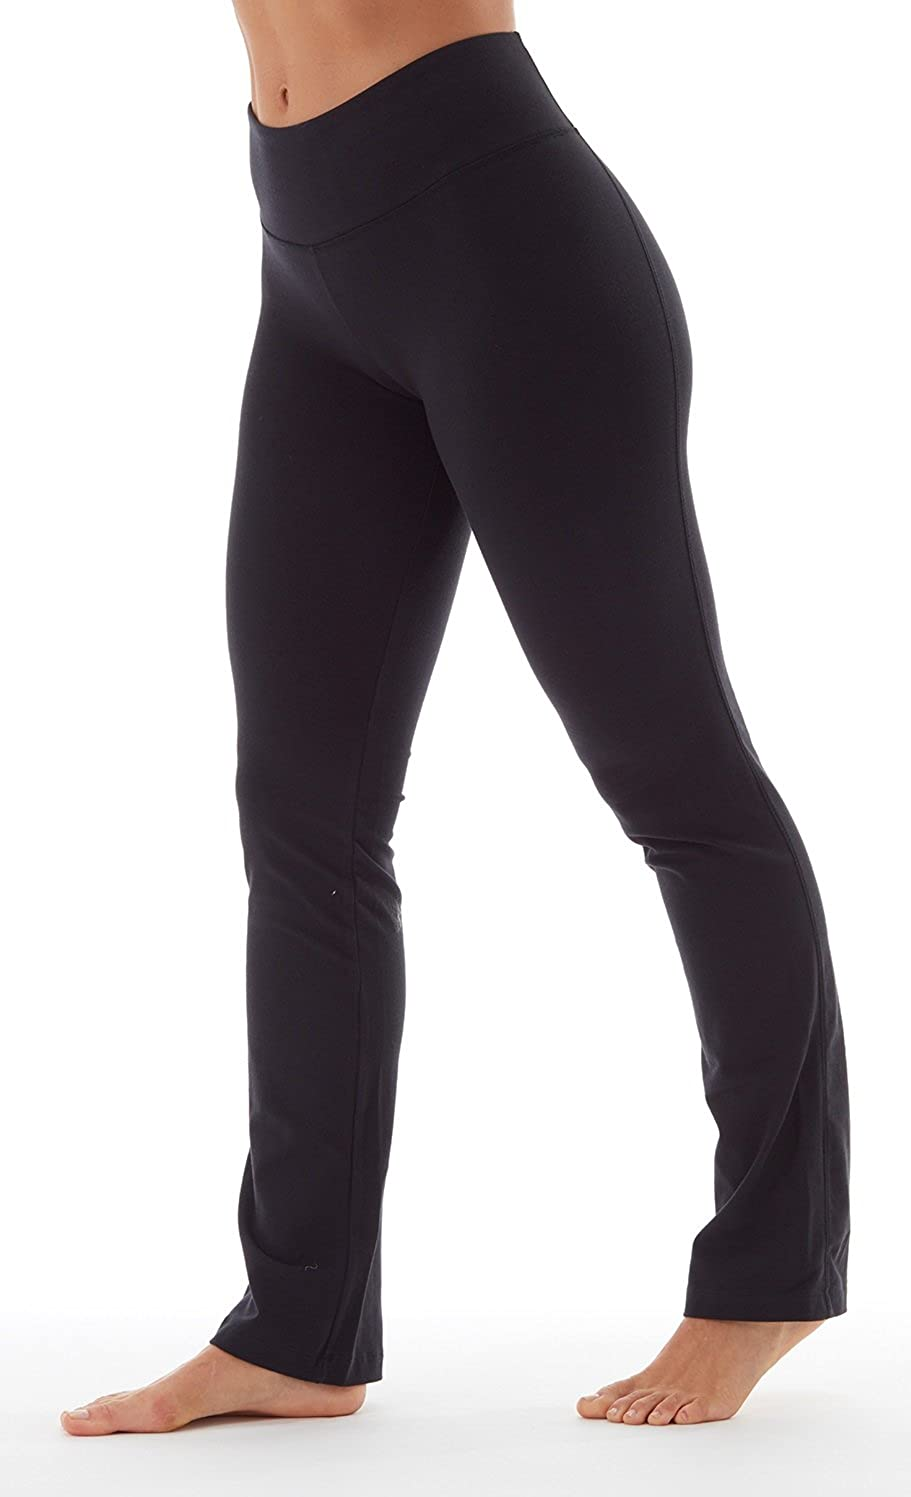 46d556fd1af80 Amazon.com : Bally Total Fitness Womens High Rise Tummy Control Pant :  Clothing